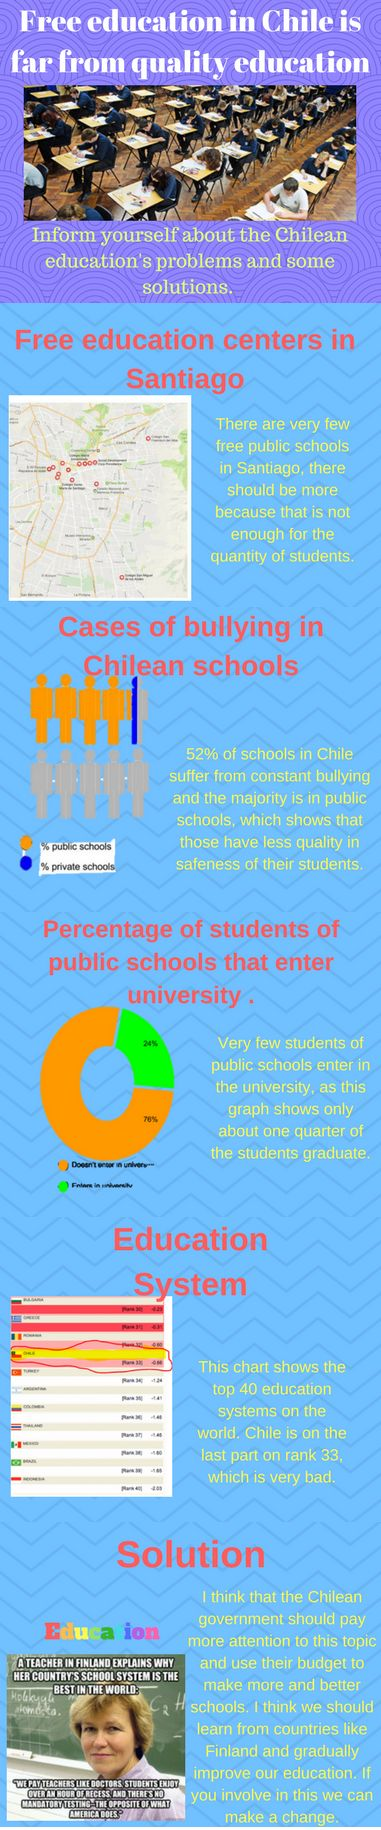 Free Education in Chile